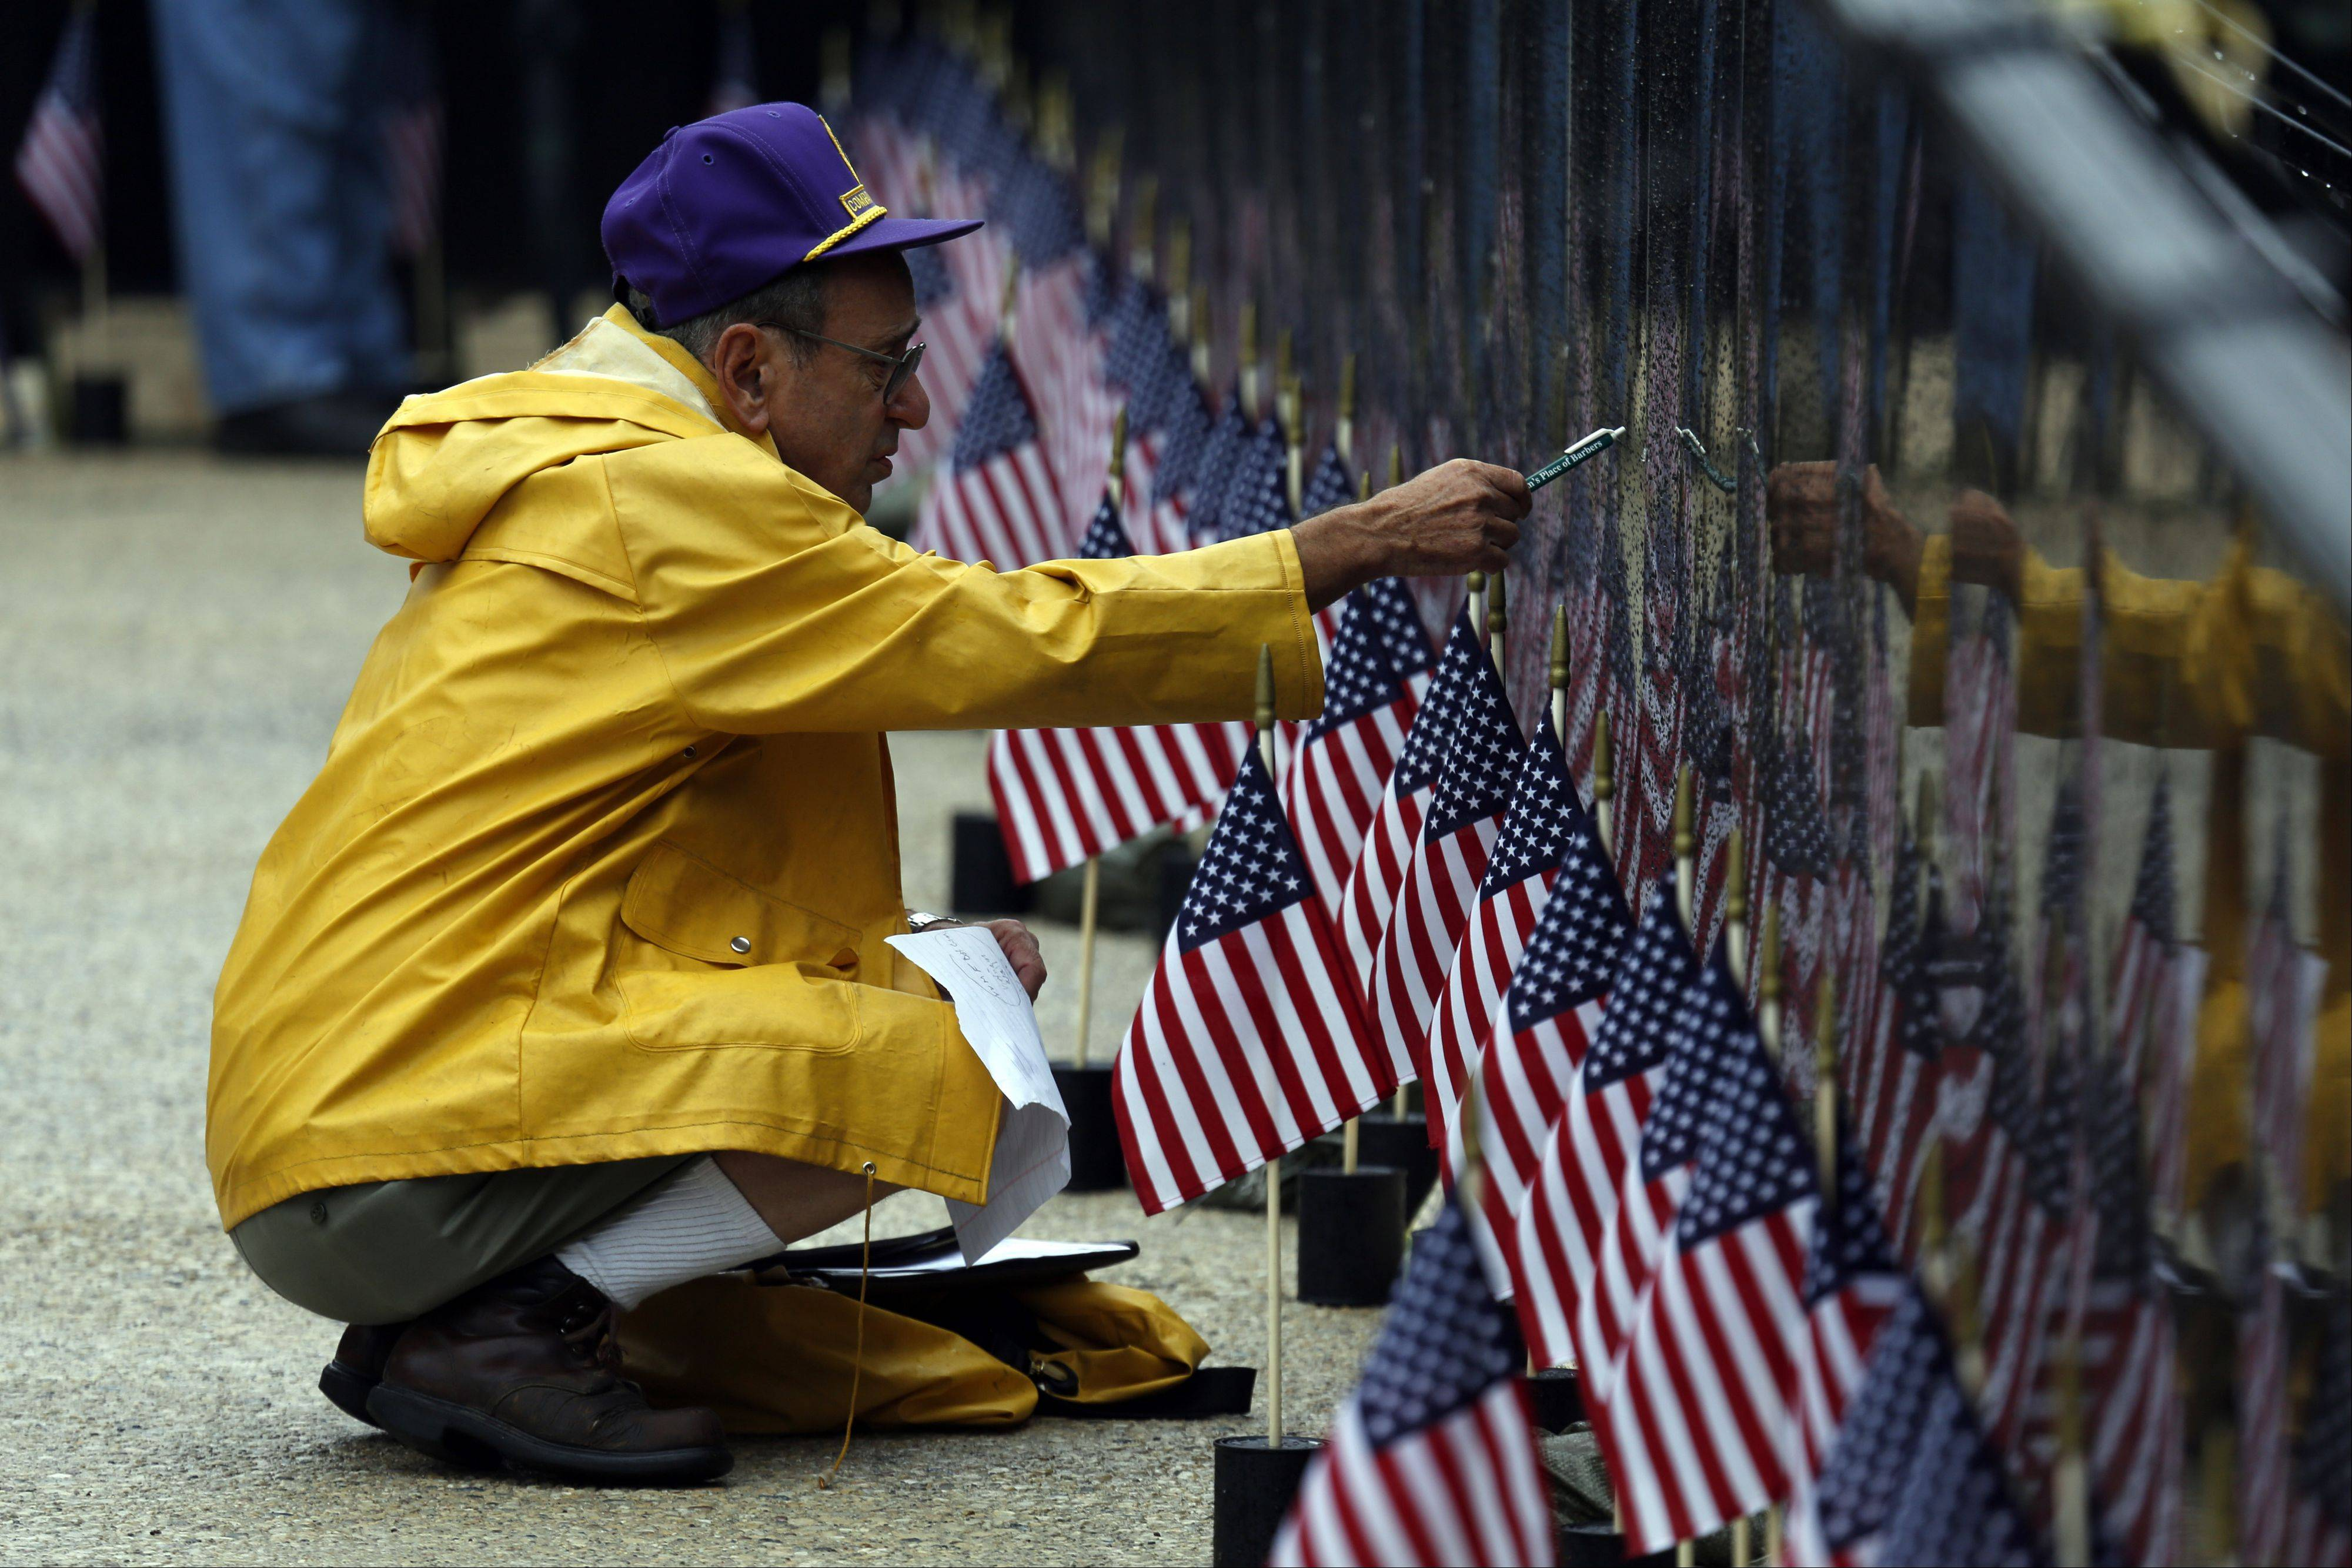 Charles Fox of Elgin, who served in the Army 1st Battalion, 26th Infantry, from 1967-68, looks for the names of some of the 18 friends that were killed on one day during his service. Fox was there also for the opening ceremony for the Wall that Heals at the Hemmens Cultural Center in Elgin.